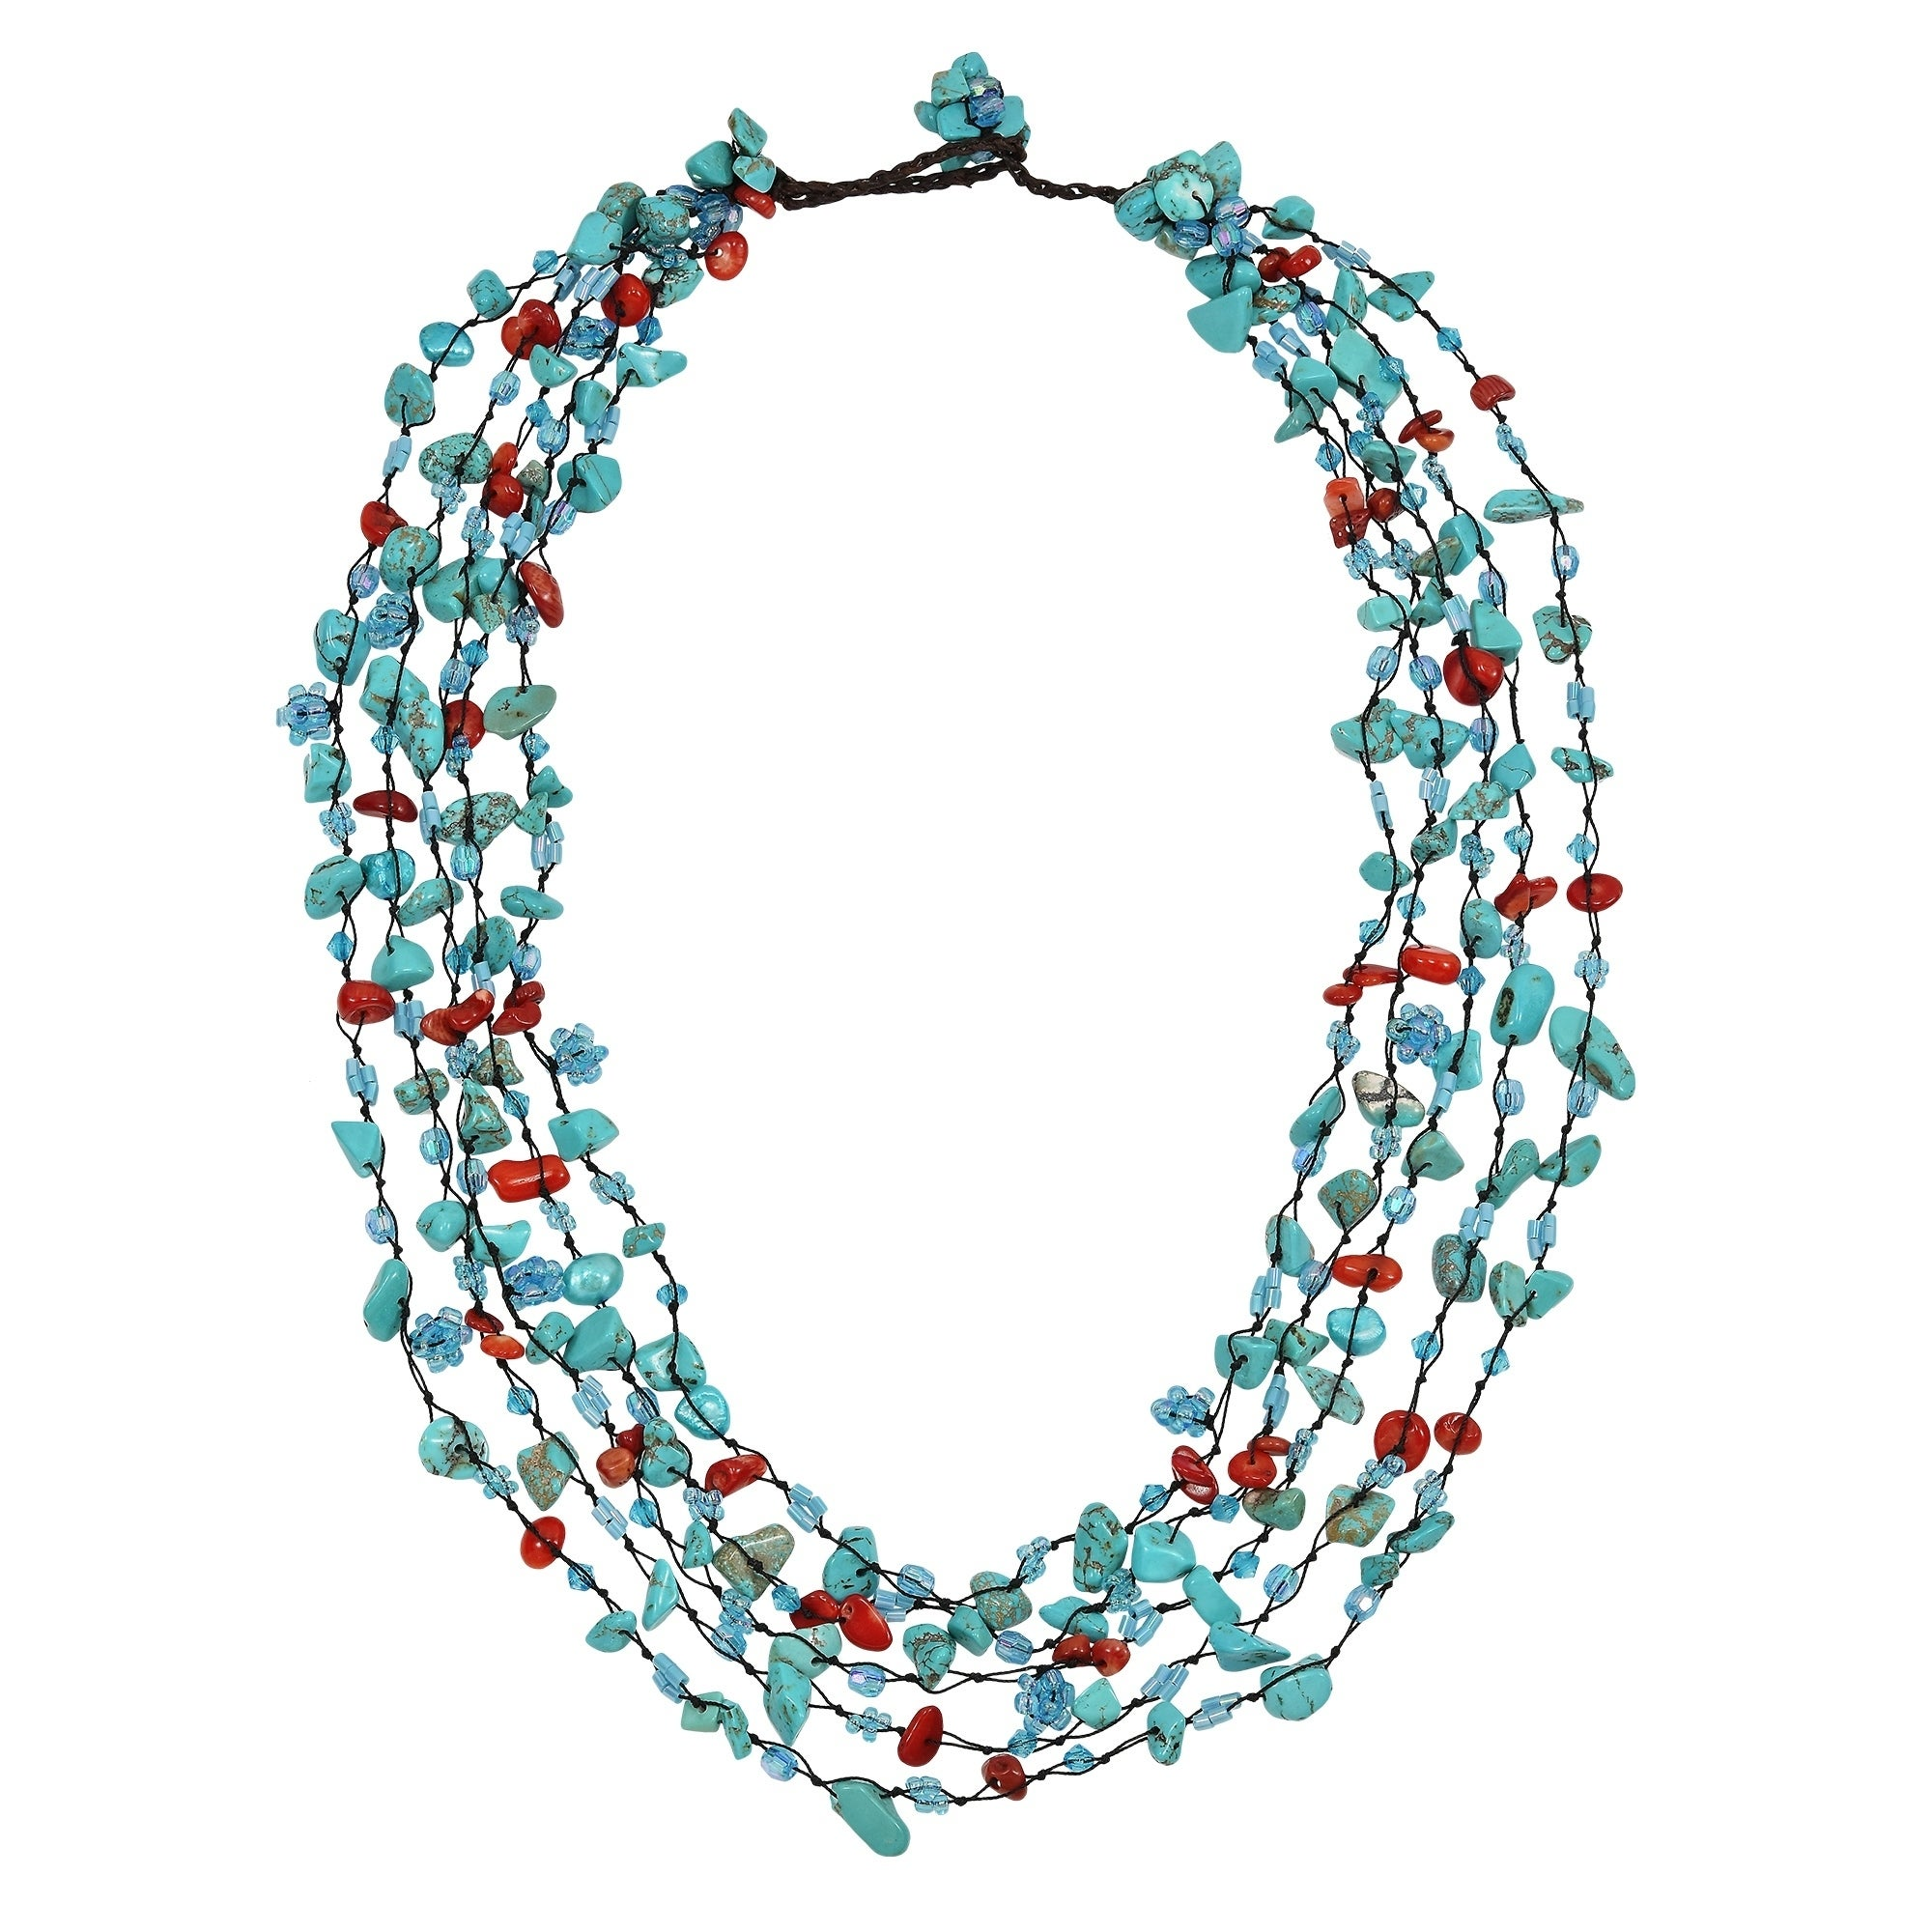 Ceramic beaded necklace burnished gold beads in a long eclectic mix of beads and metal elements glass beads Turquoise ceramic beads